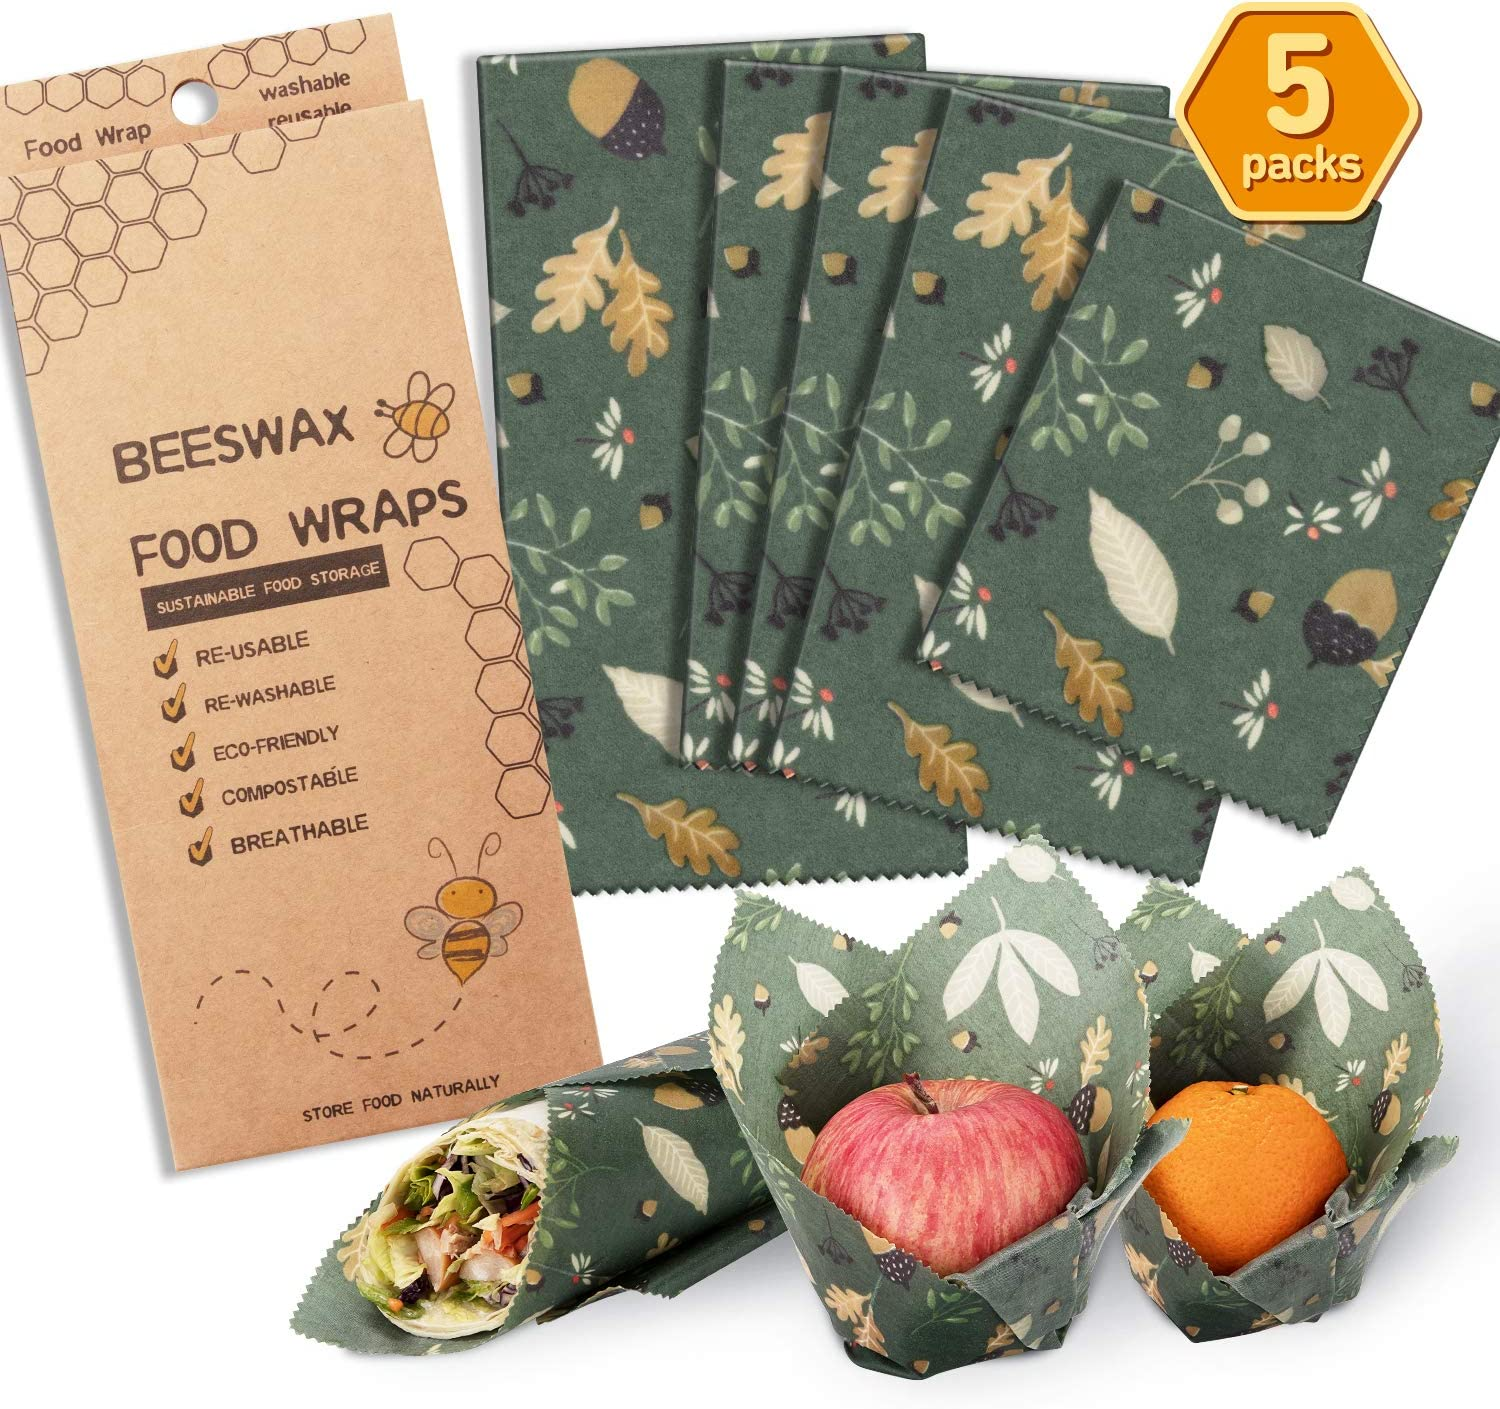 Beeswax Wrap Assorted 5 Packs, Eco Friendly Reusable Food Wraps, Biodegradable, Sustainable Plastic Free Food Storage- 1 Small, 3 Medium, 1 Large- Say Goodbye to Plastic(Green)